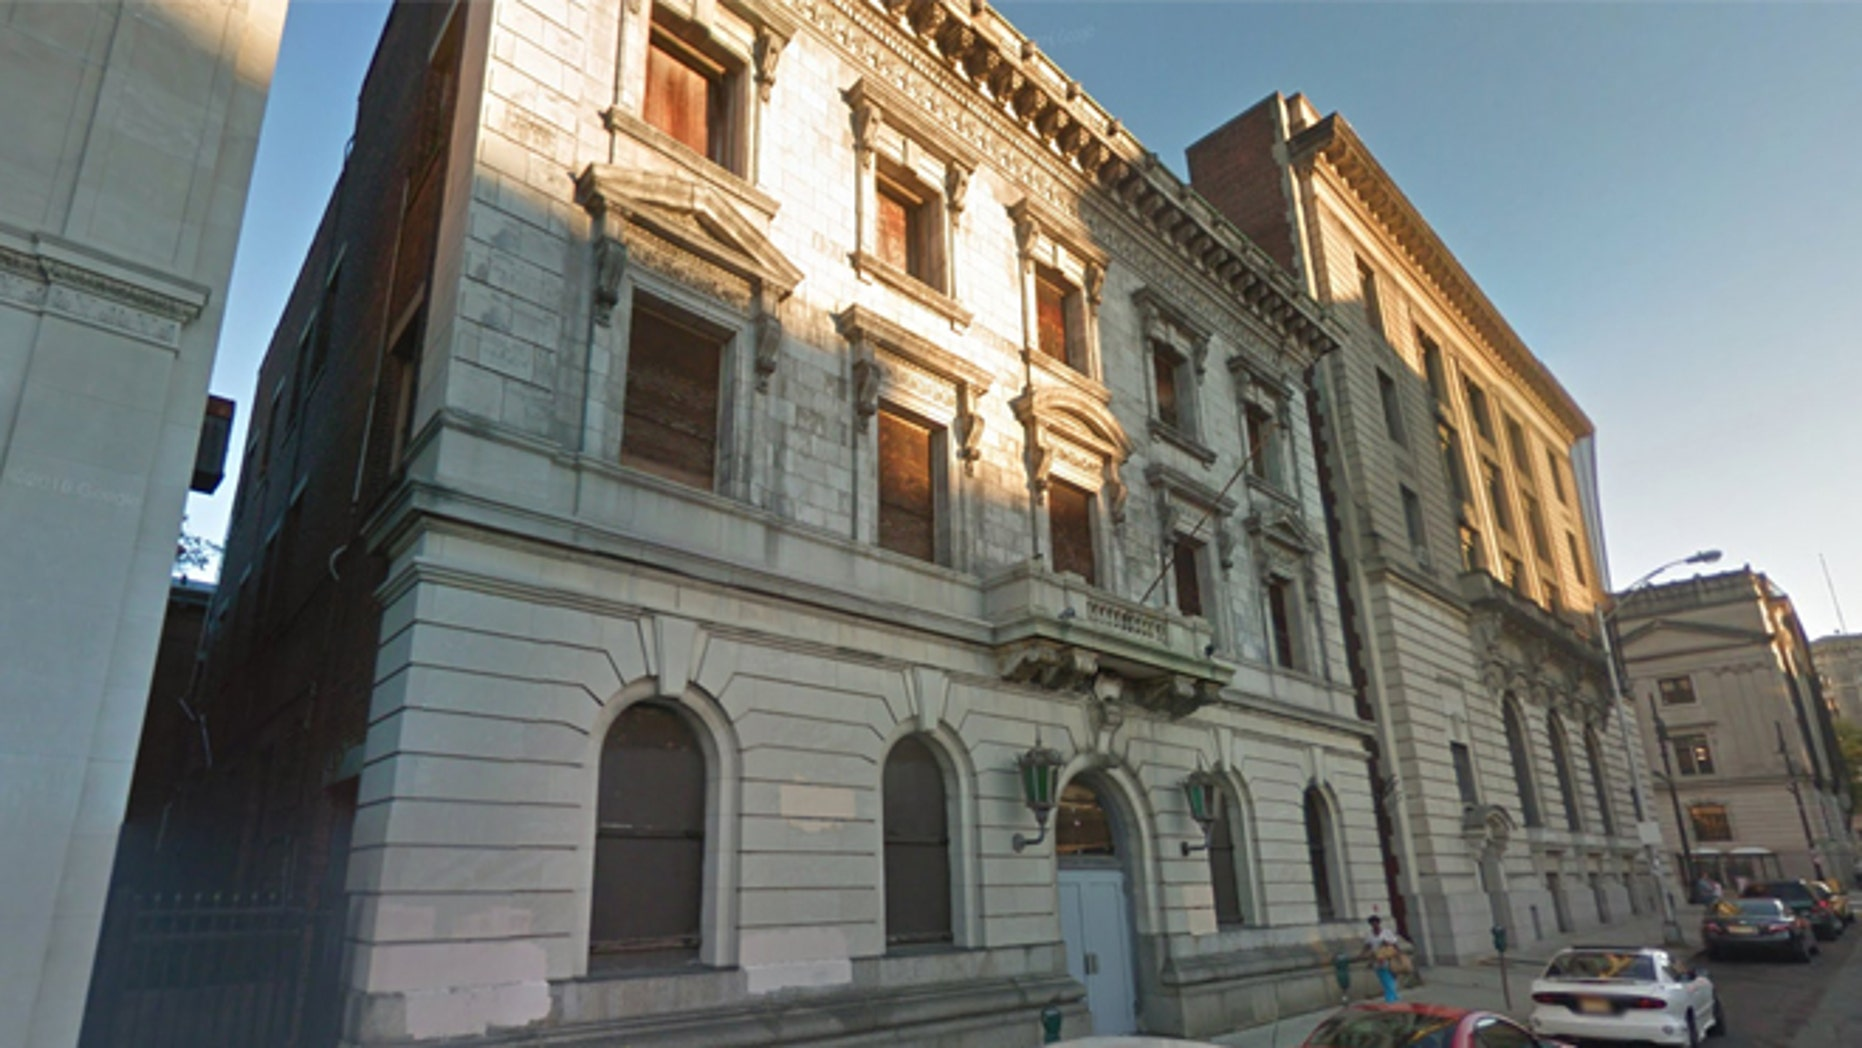 The former headquarters of the Paterson Police Department.